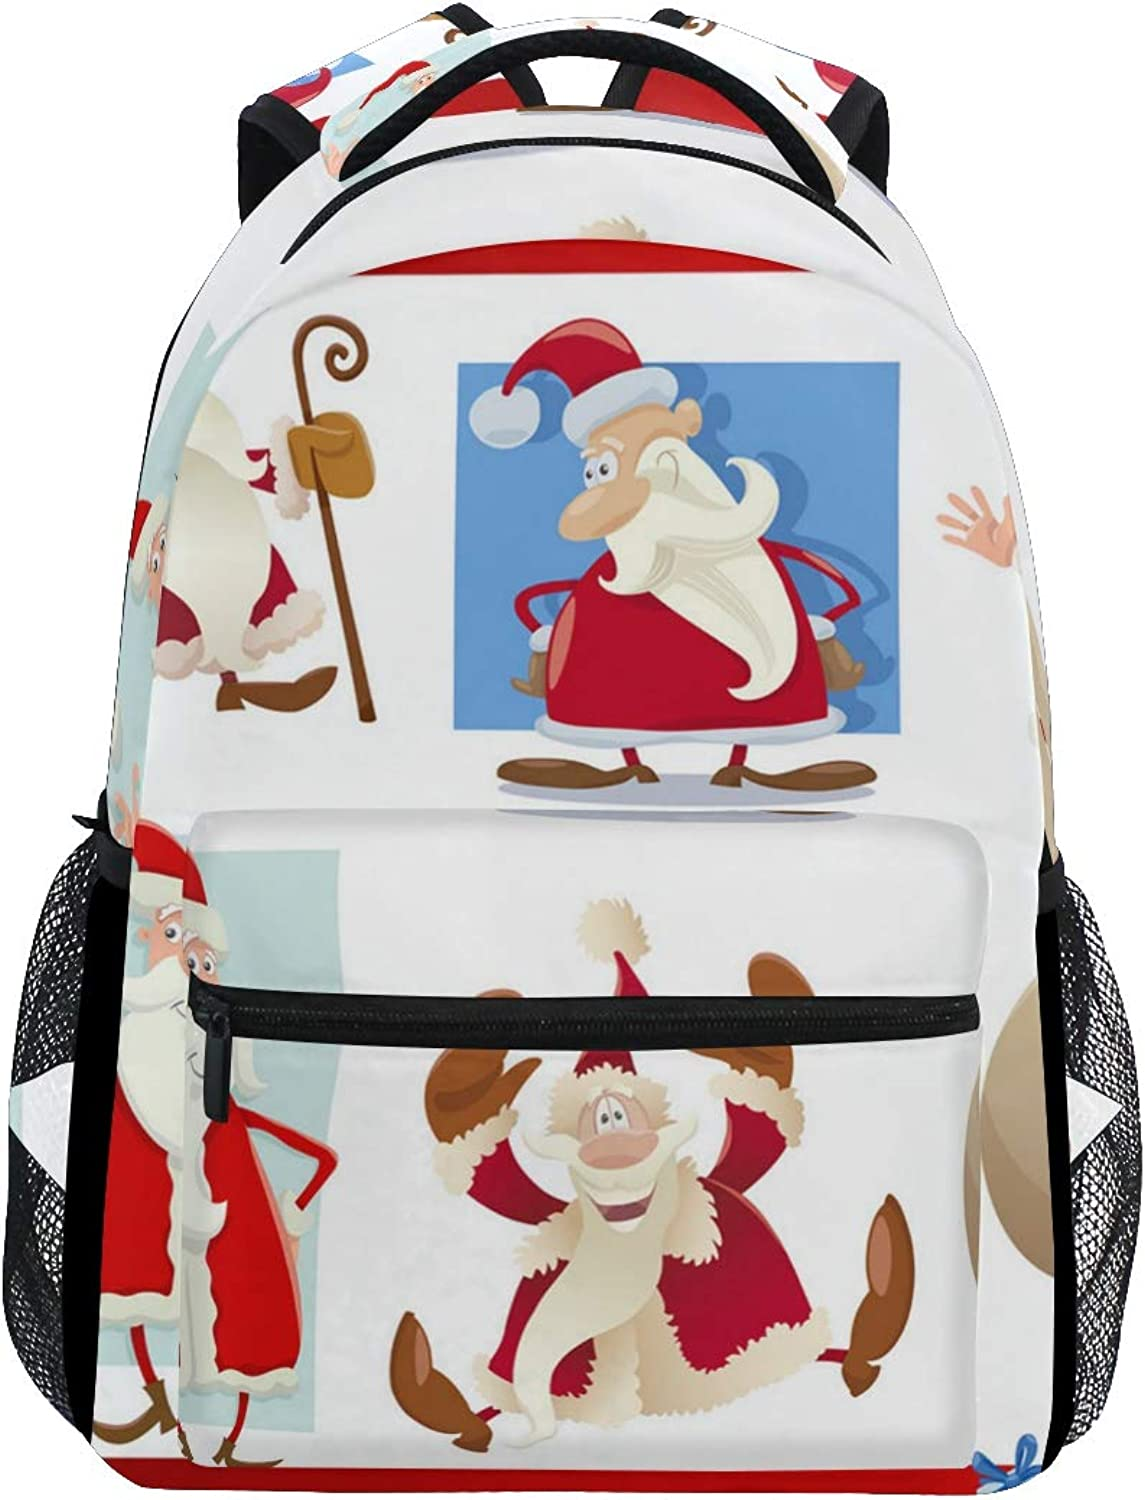 Bearded Naughty Santa Claus Trekking Backpack Fashion Backpack Oversized Backpack Men and Women Durable Travel Computer Backpack 17 Inch Notebook Waterproof Large Business Bag